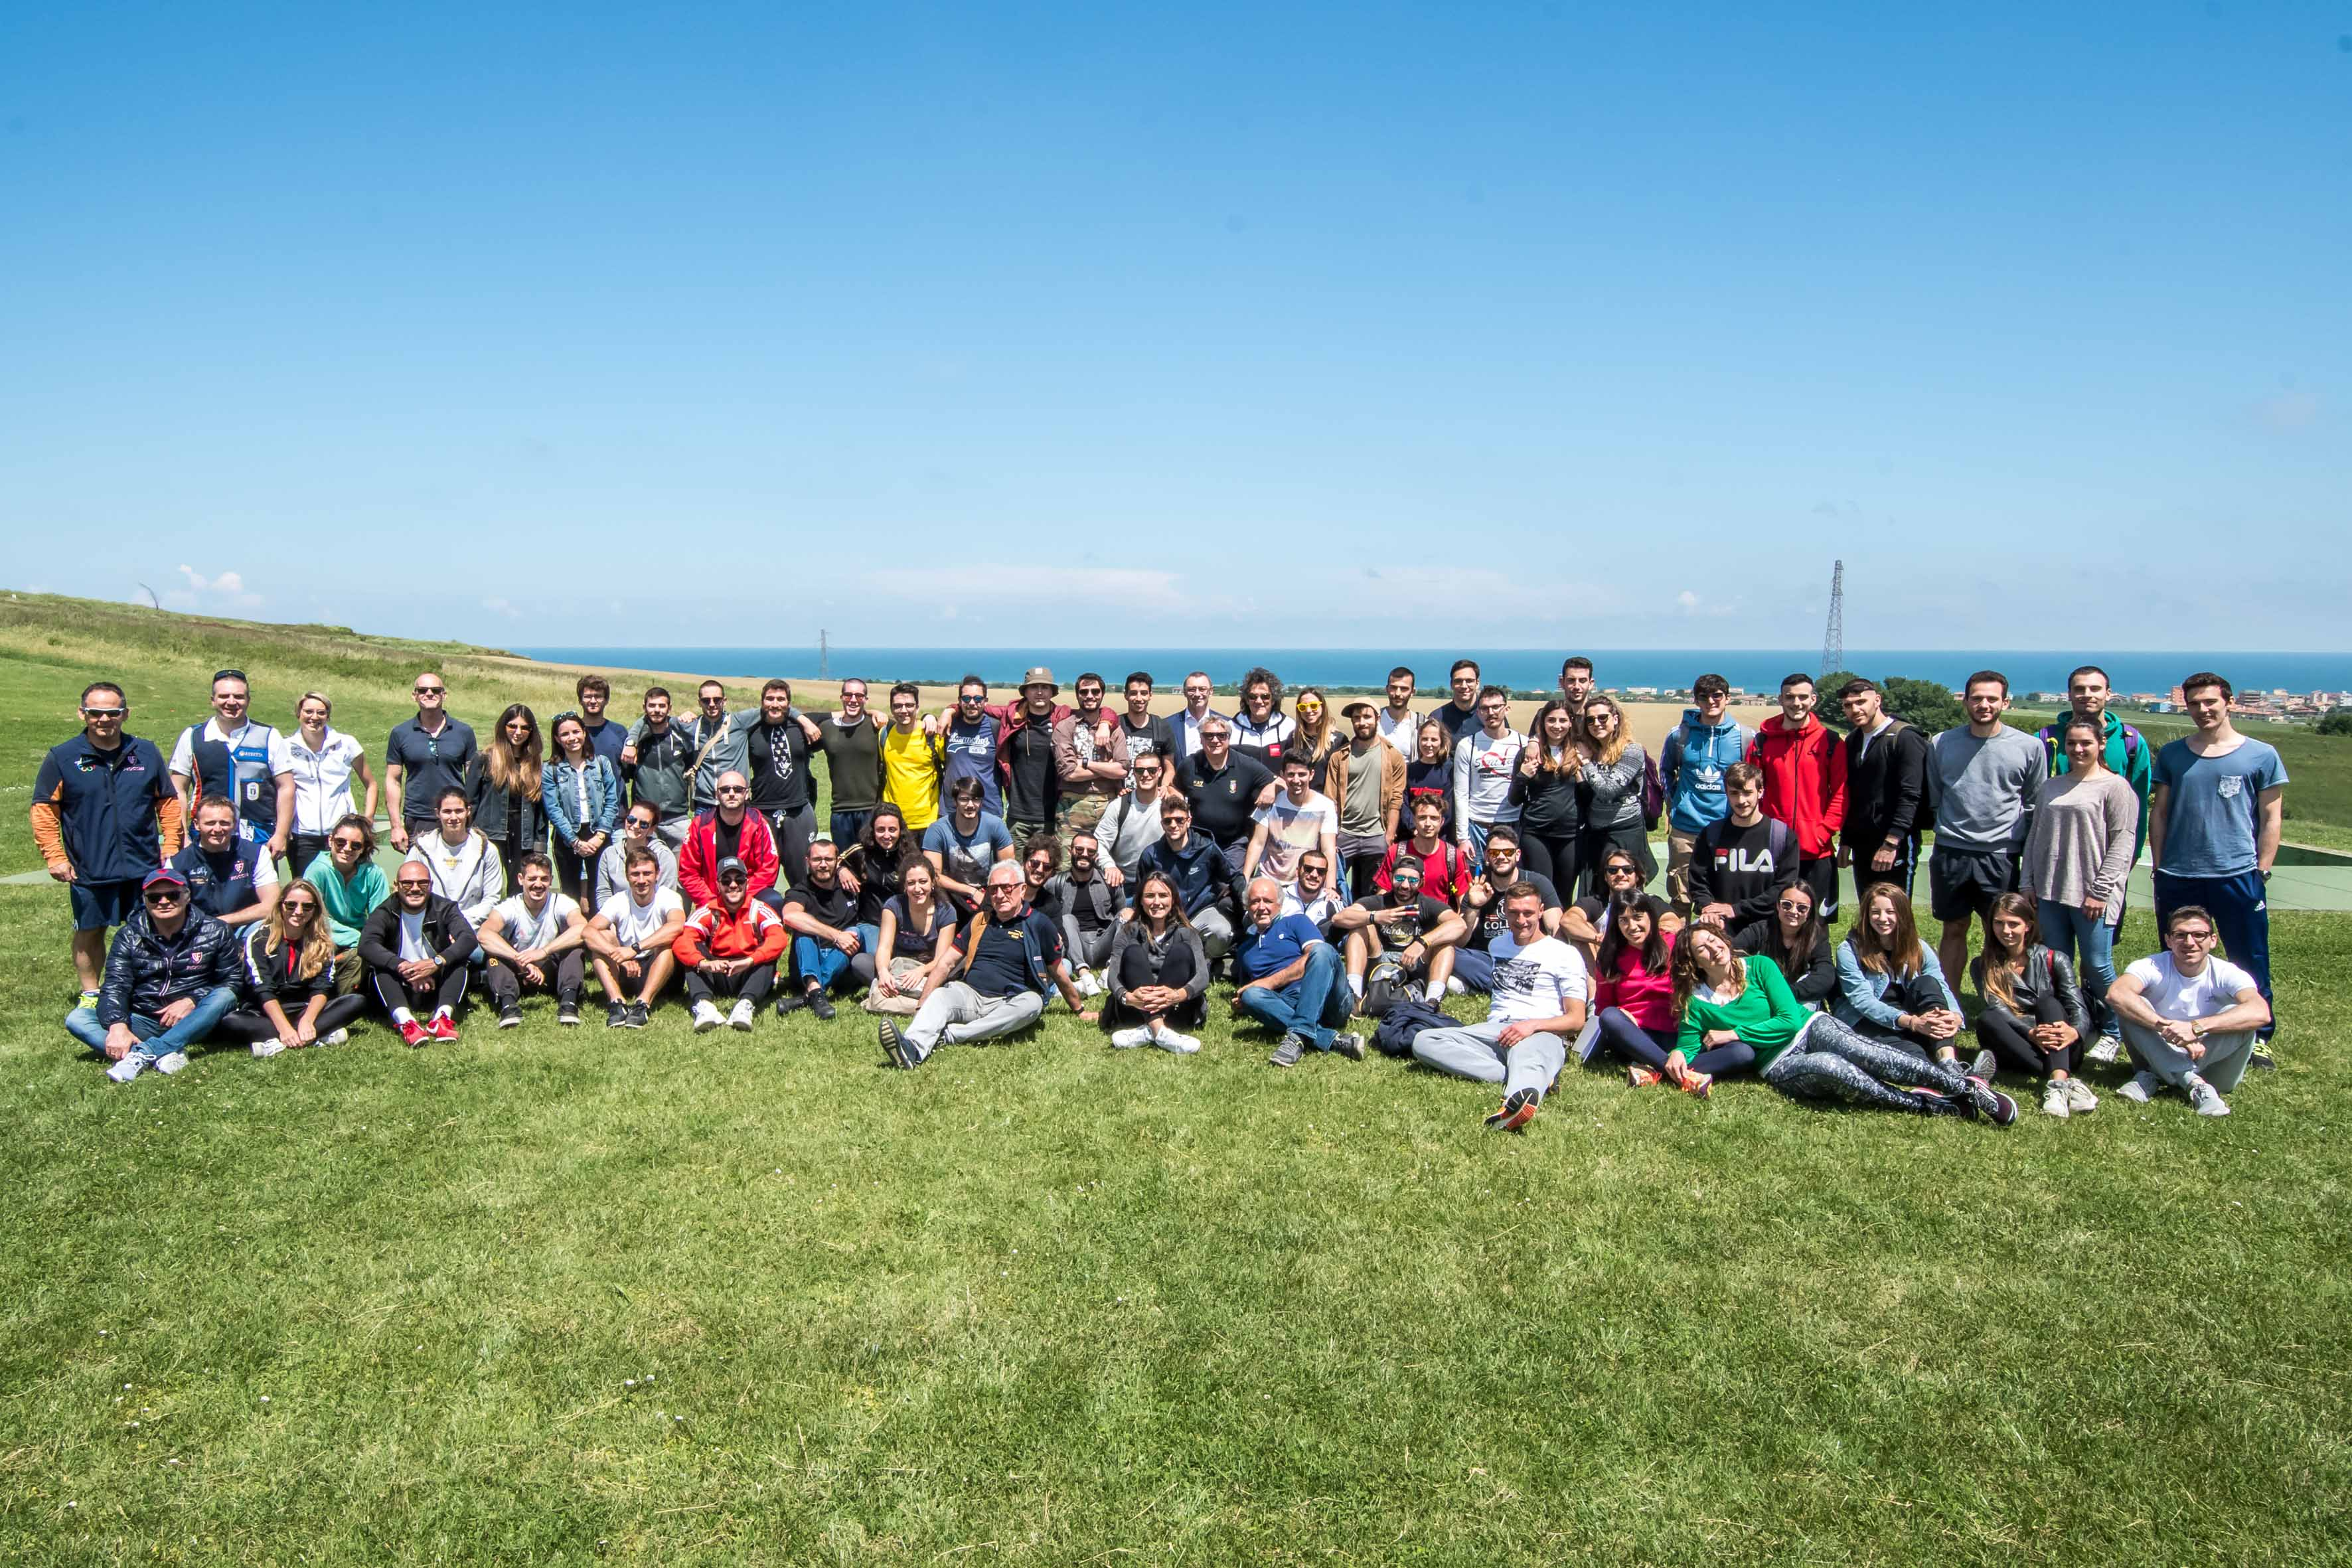 FIOCCHI INTRODUCES MORE THAN 70 STUDENTS OF THE UNIVERSITY OF URBINO TO CLAY SHOOTING